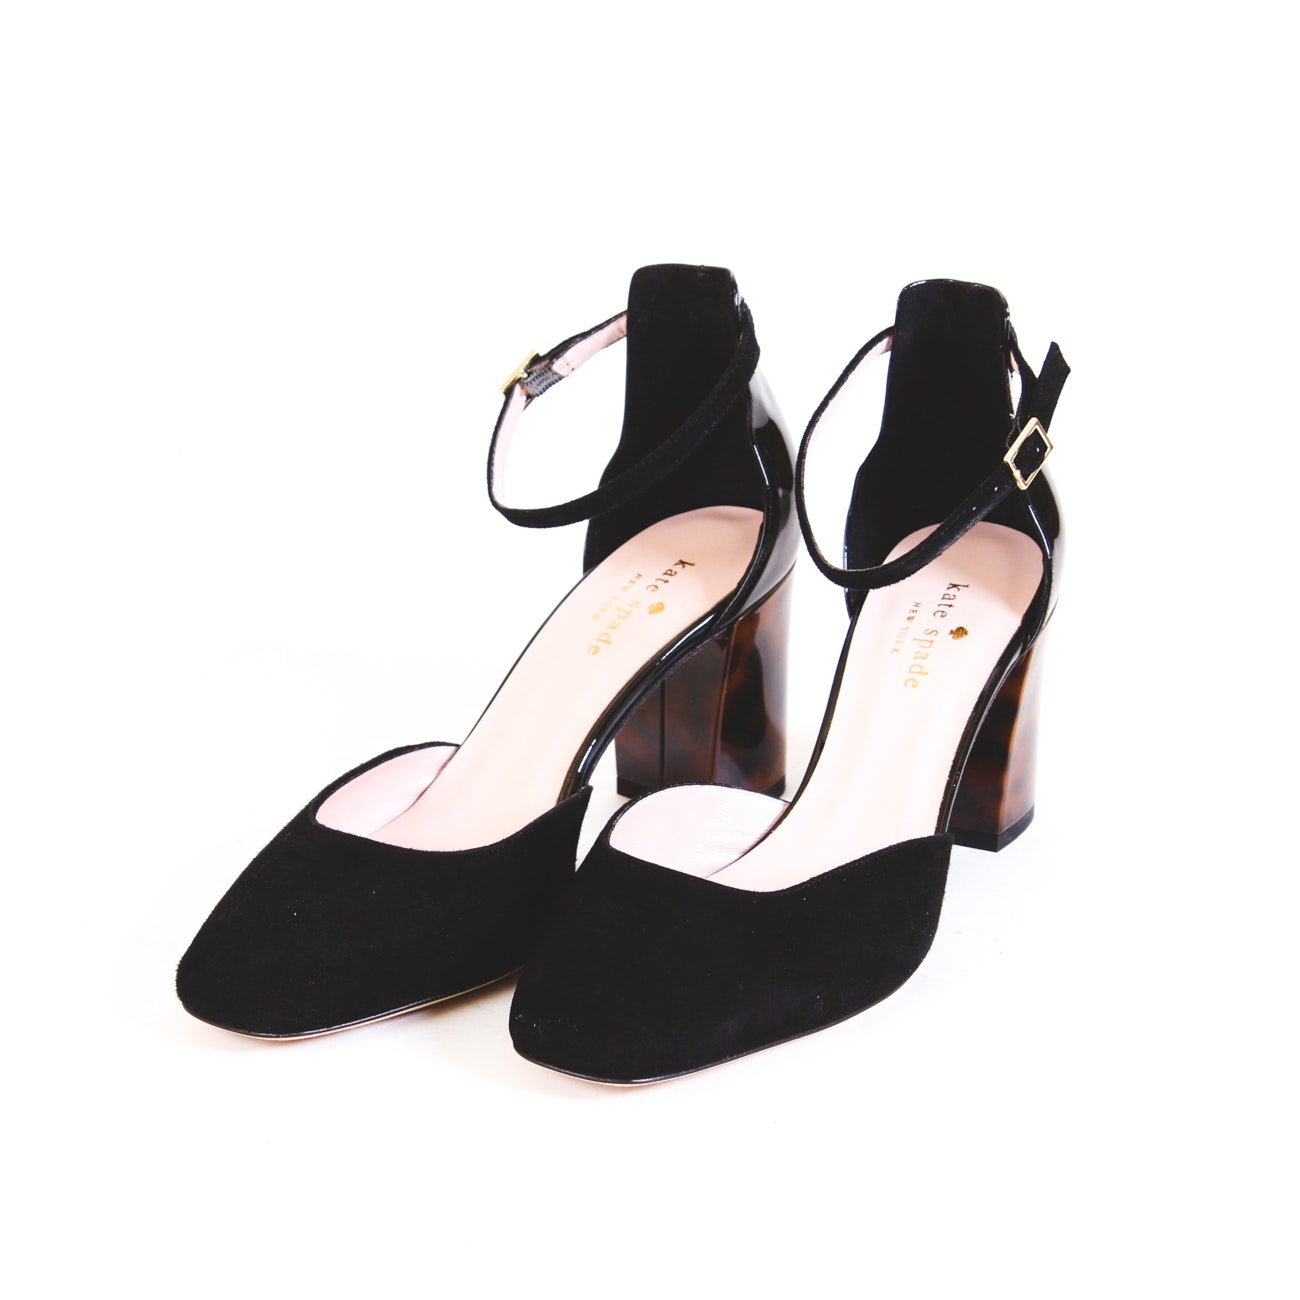 Kate Spade Black Patent Leather and Suede Shoes